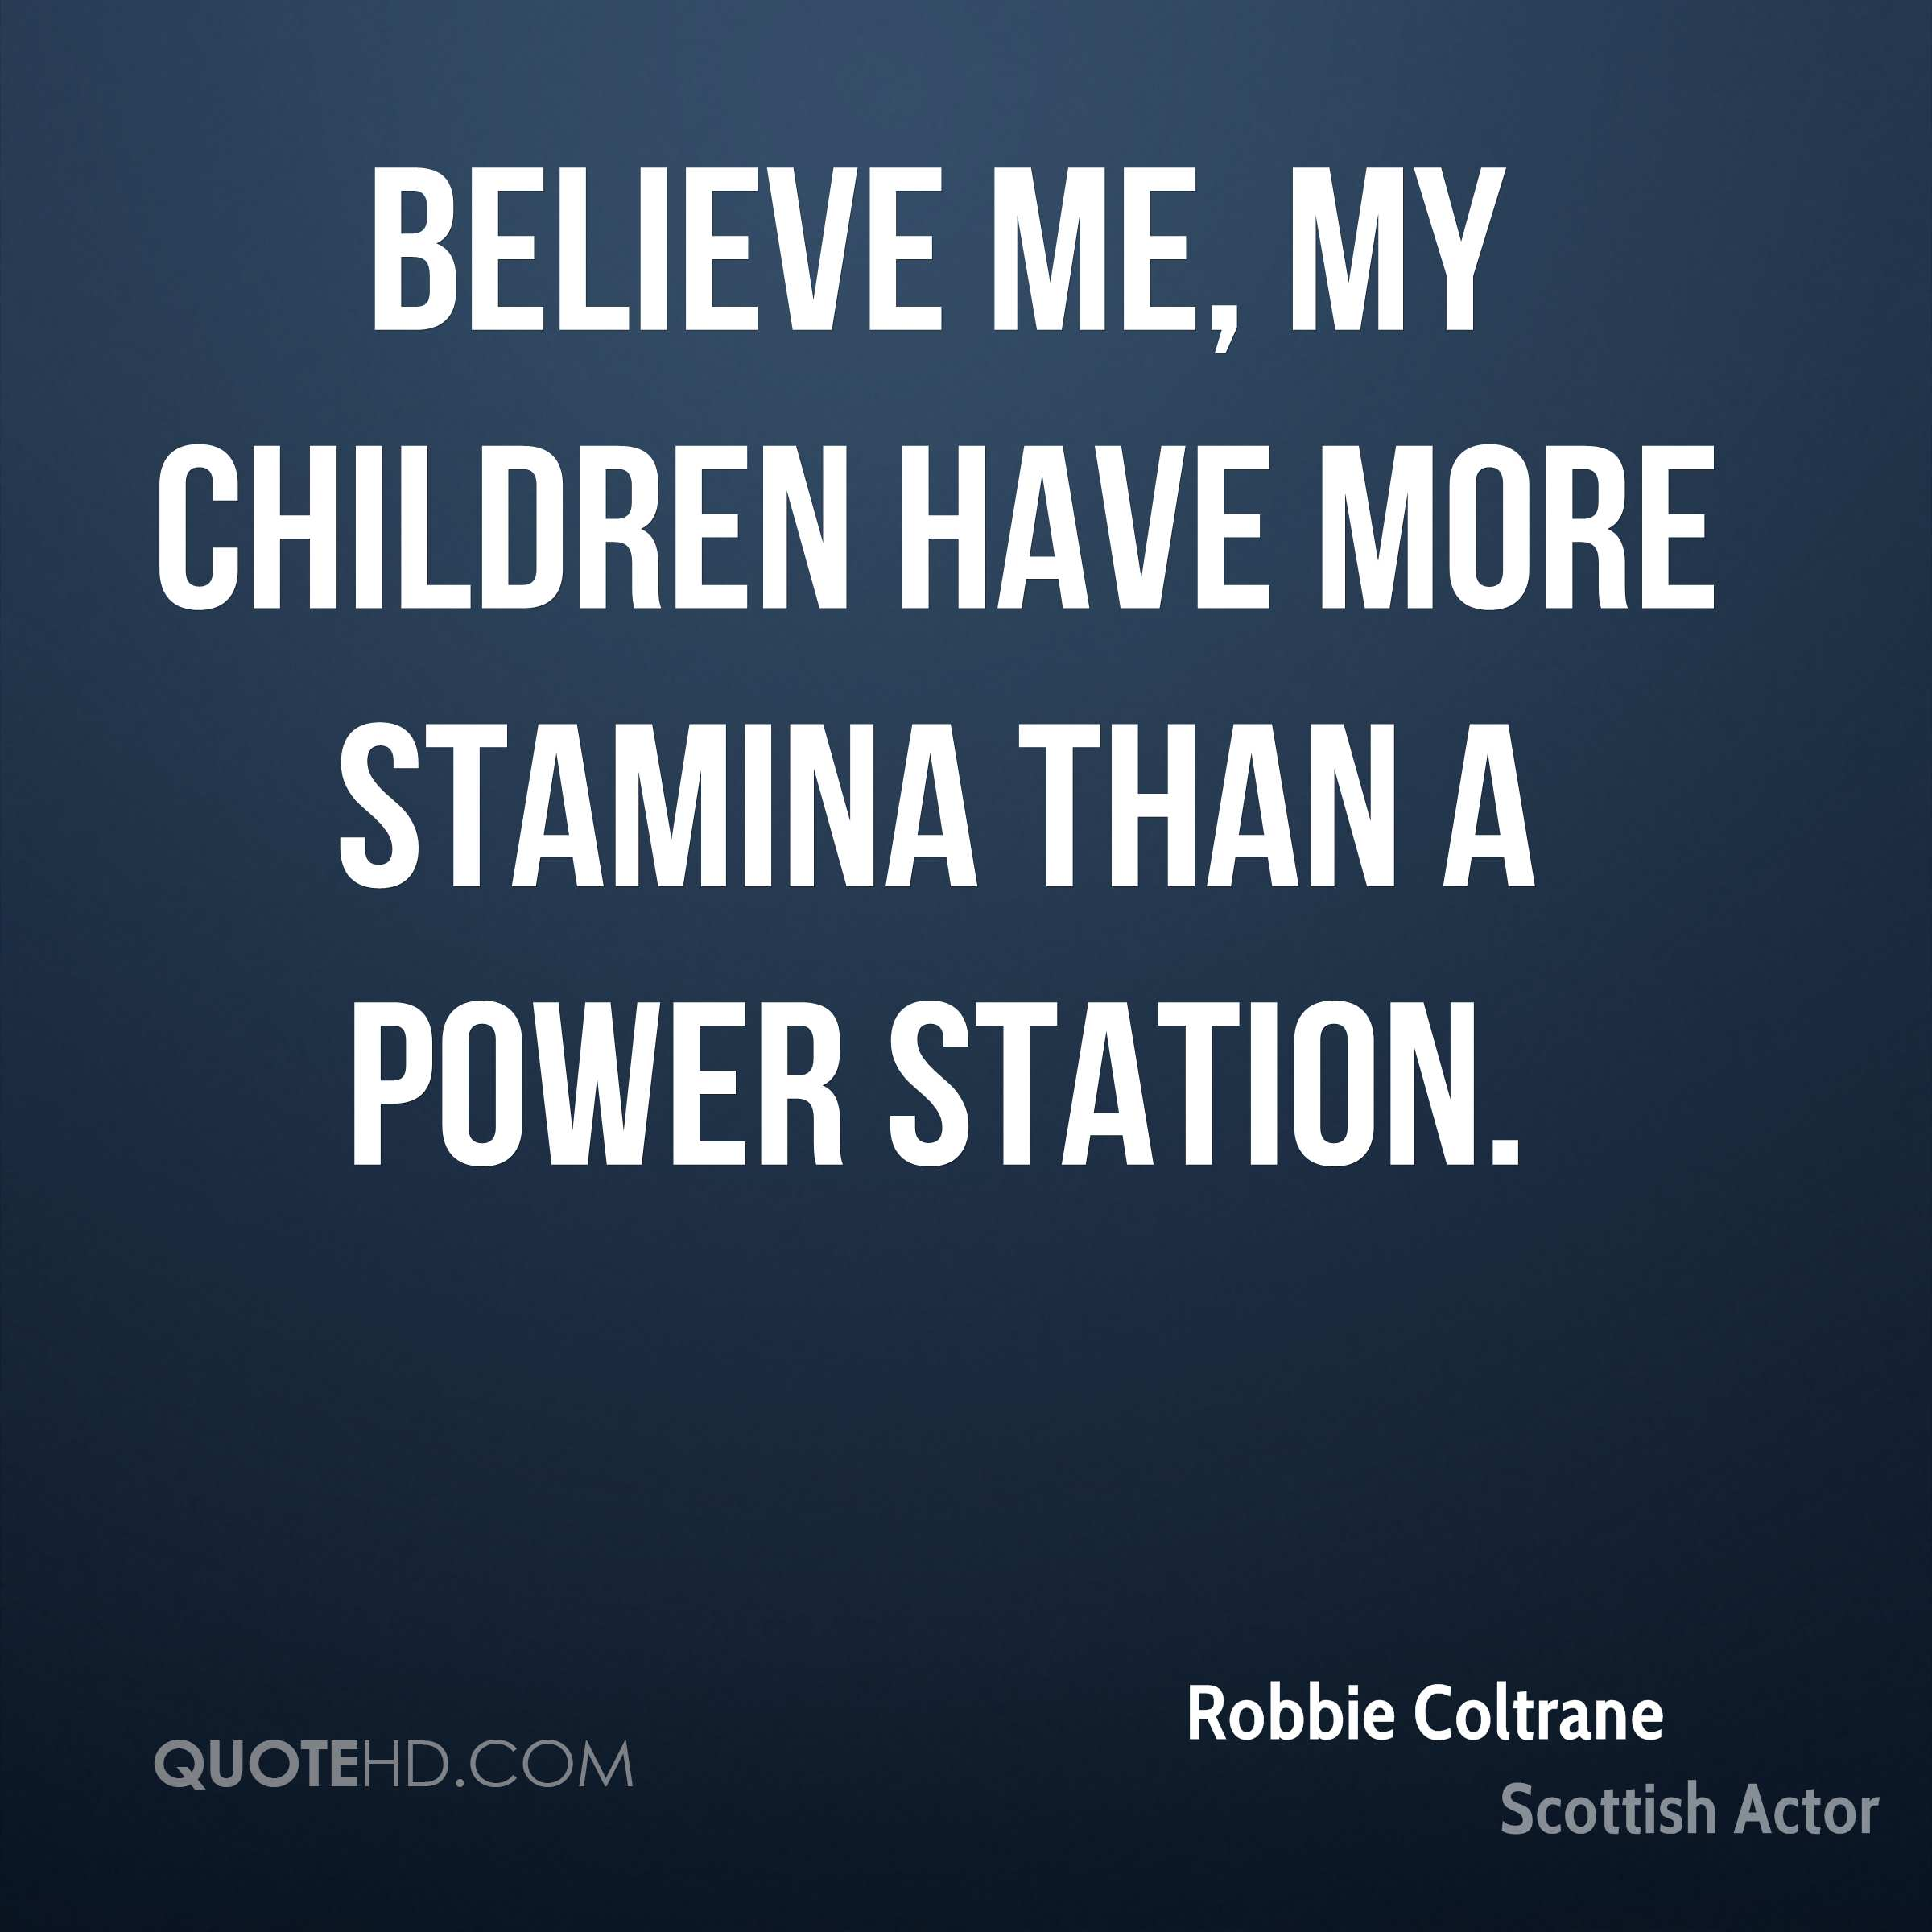 Believe me, my children have more stamina than a power station.